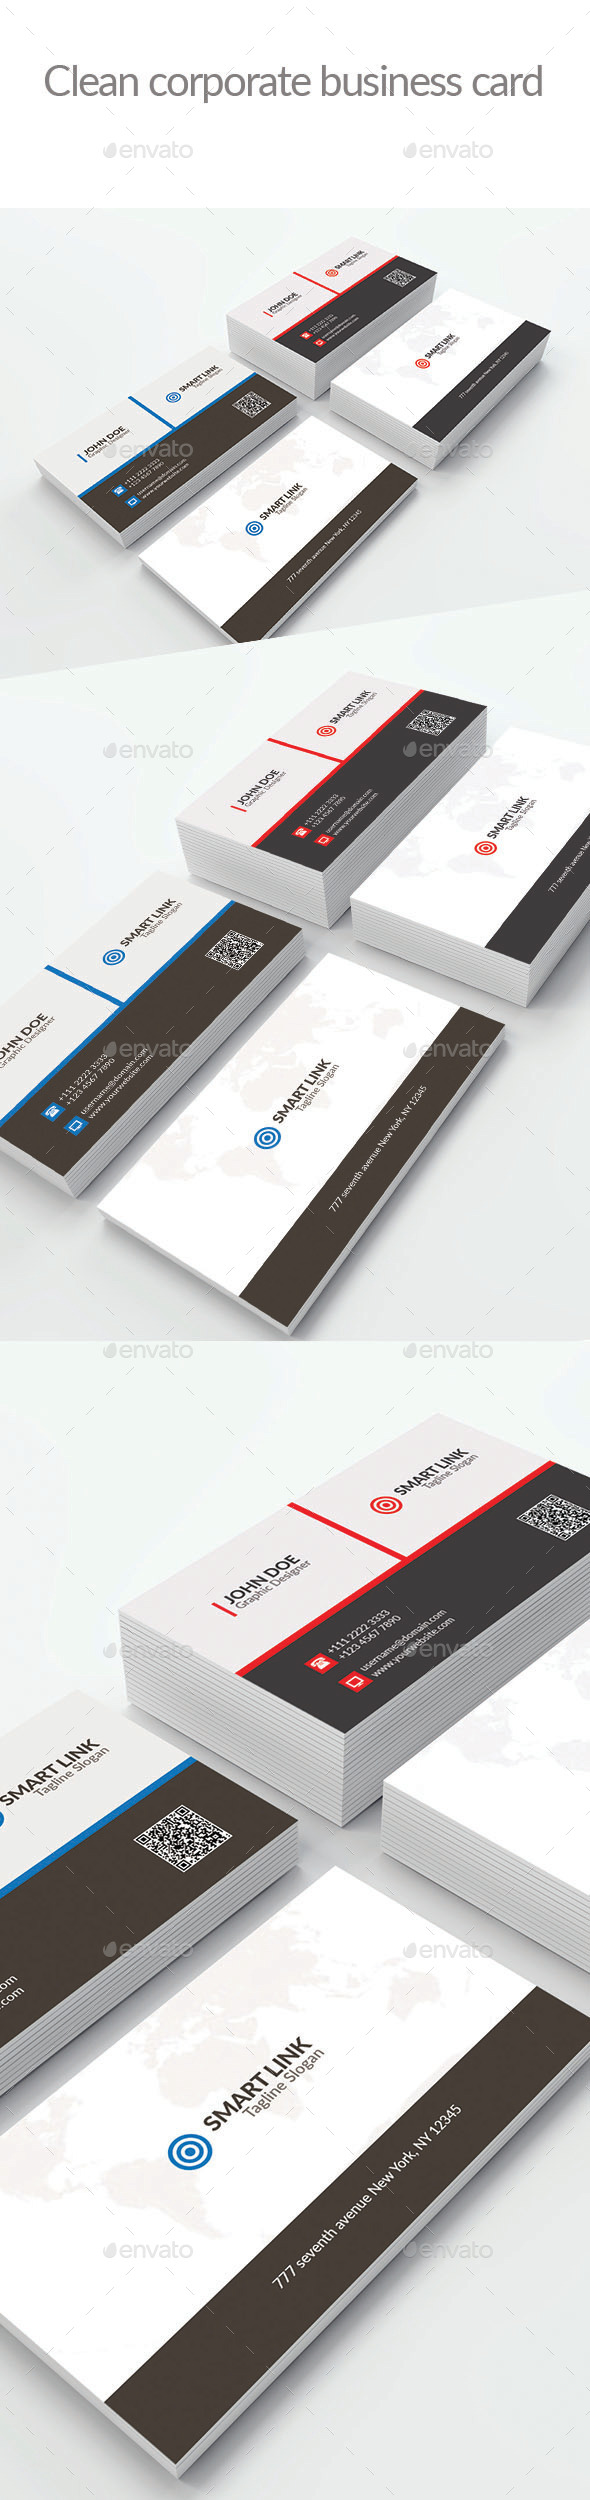 Clean Corporate Business Card-5 - Corporate Business Cards